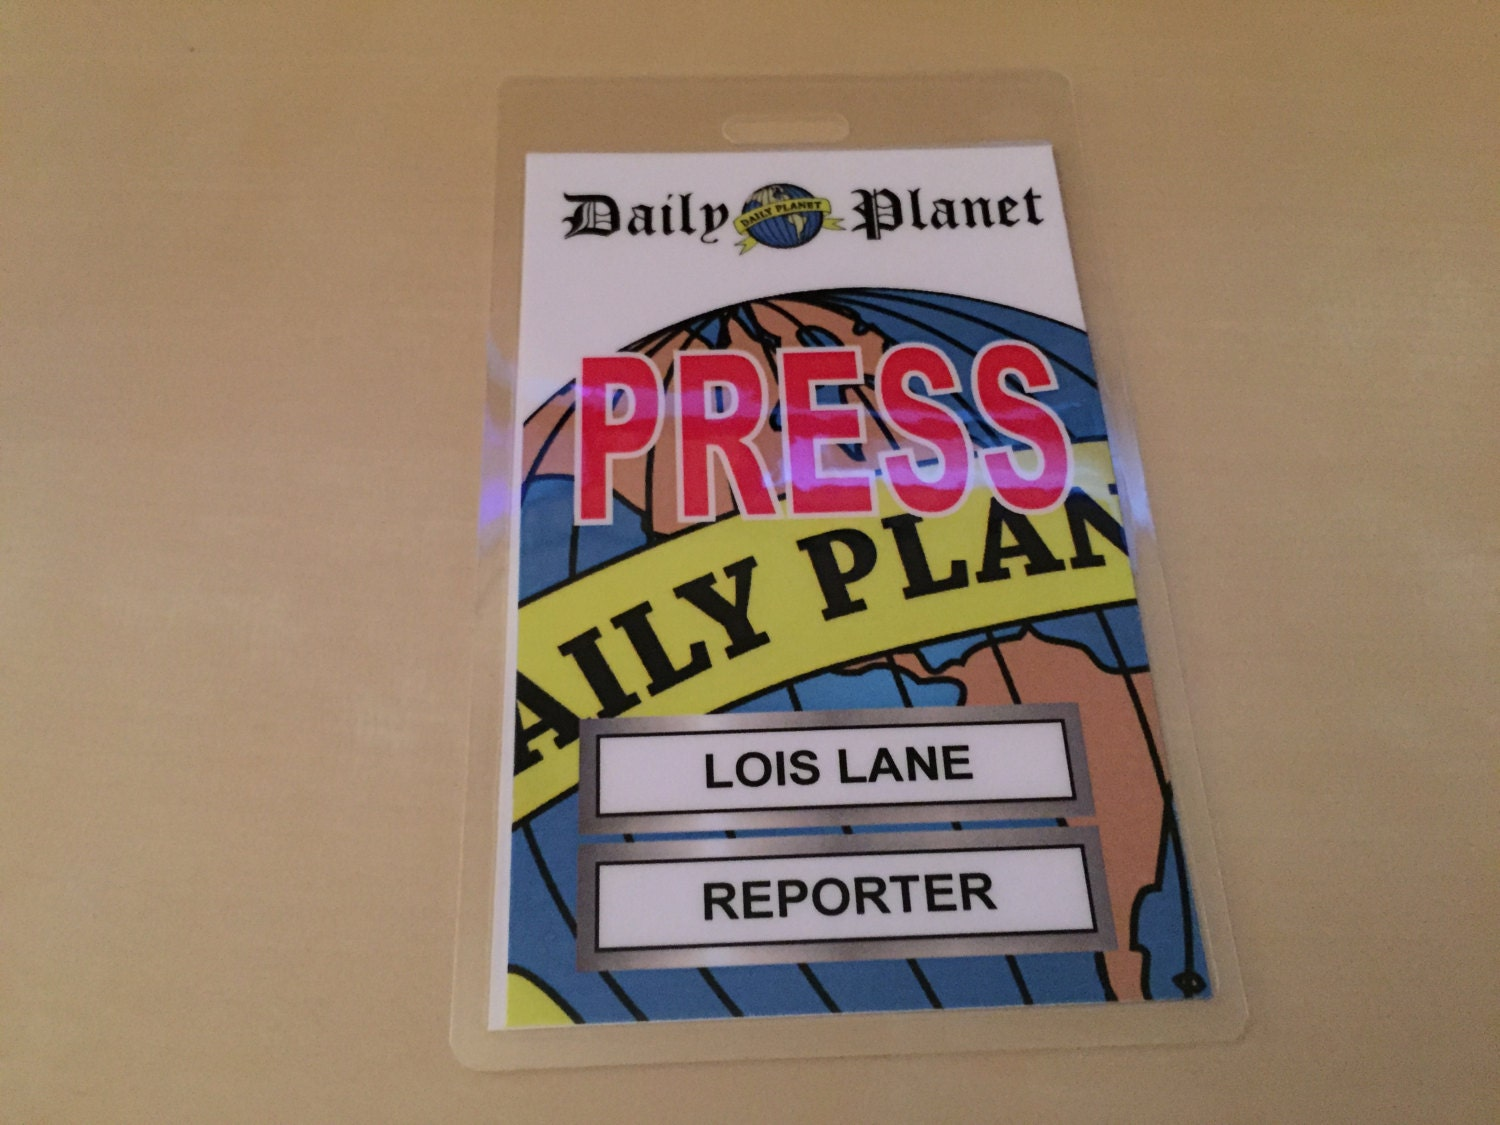 image regarding Lois Lane Press Pass Printable known as Photos of Every day World Push P Printable - www